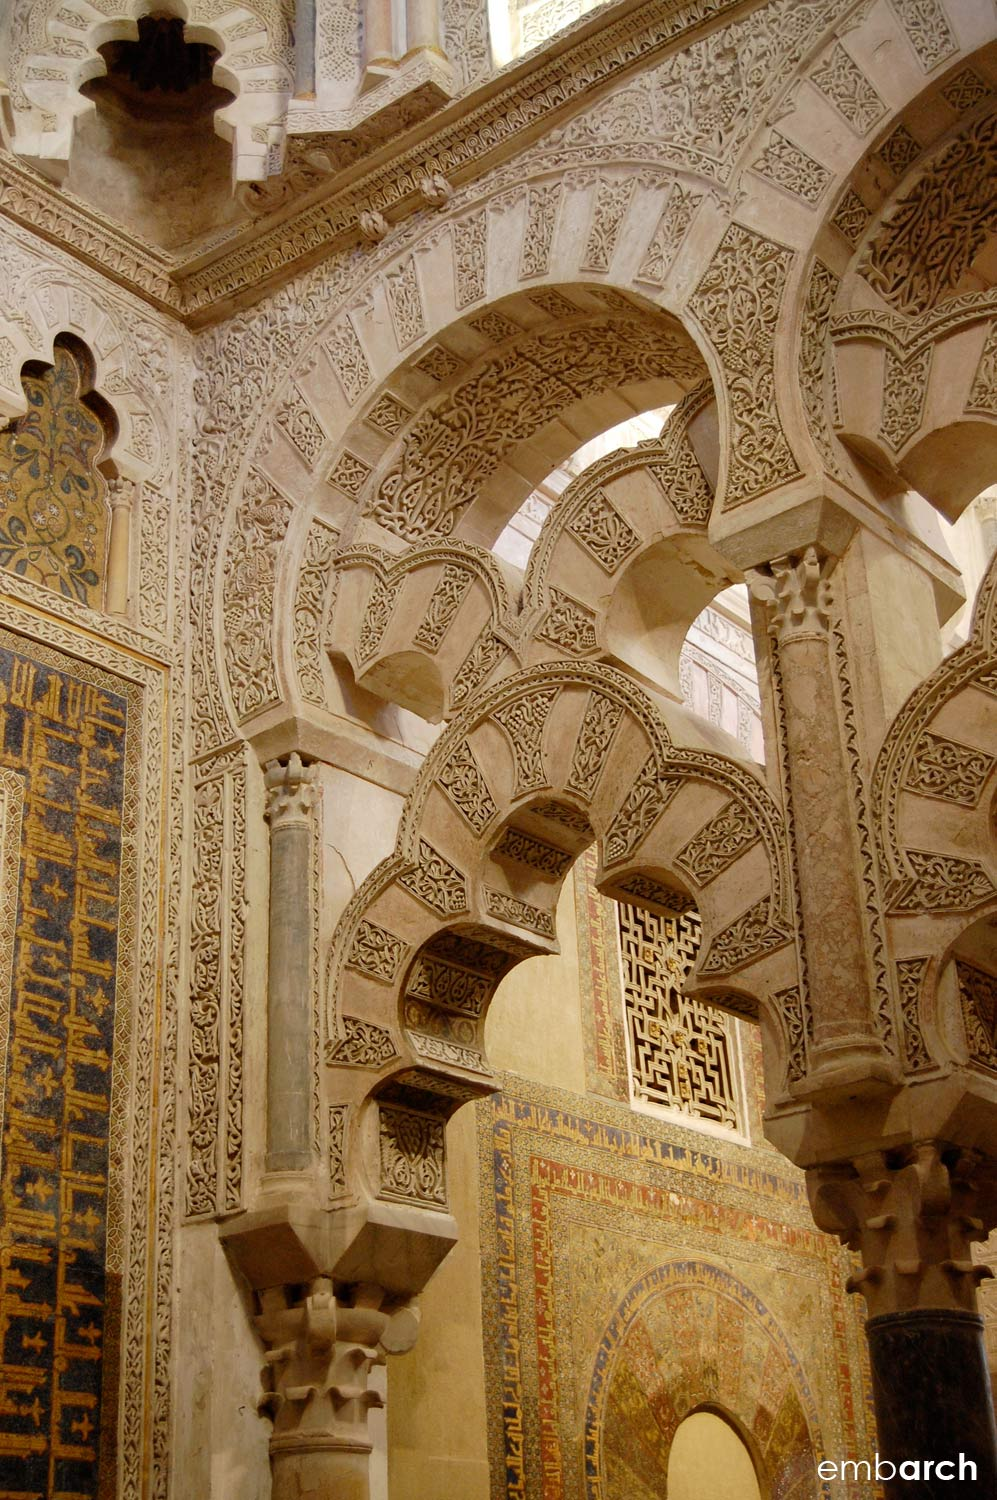 The Mosque-Cathedral of Cordoba - interior detail